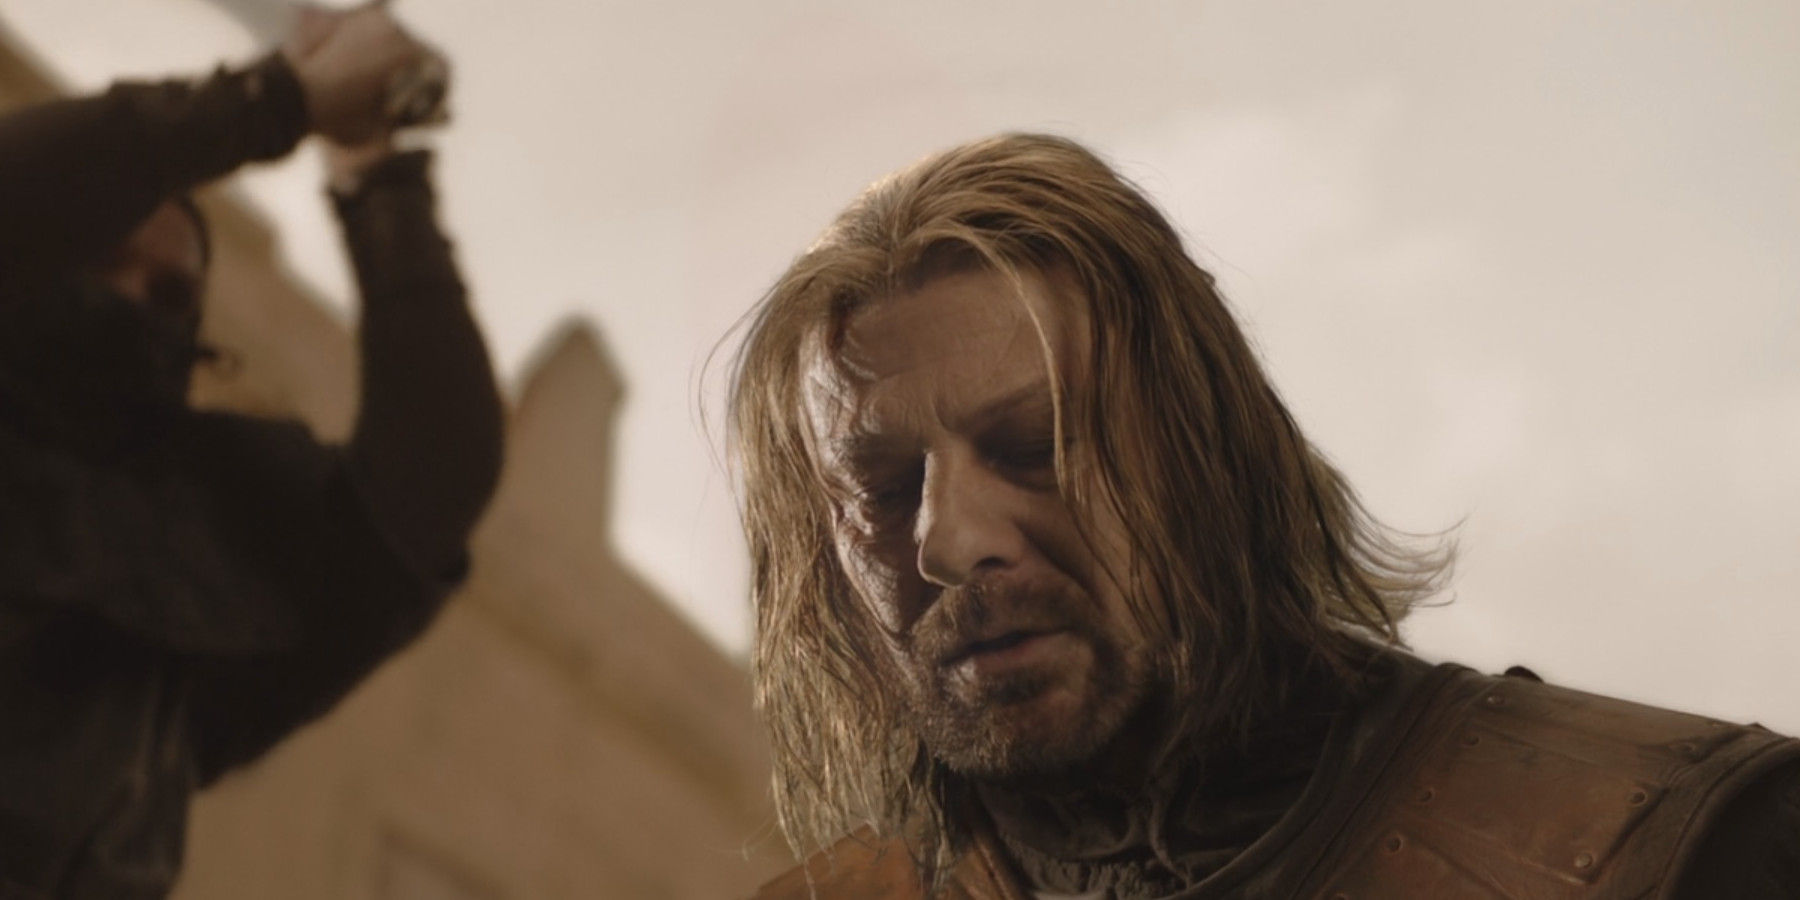 Ned Stark Gets Beheaded in Game of Thrones